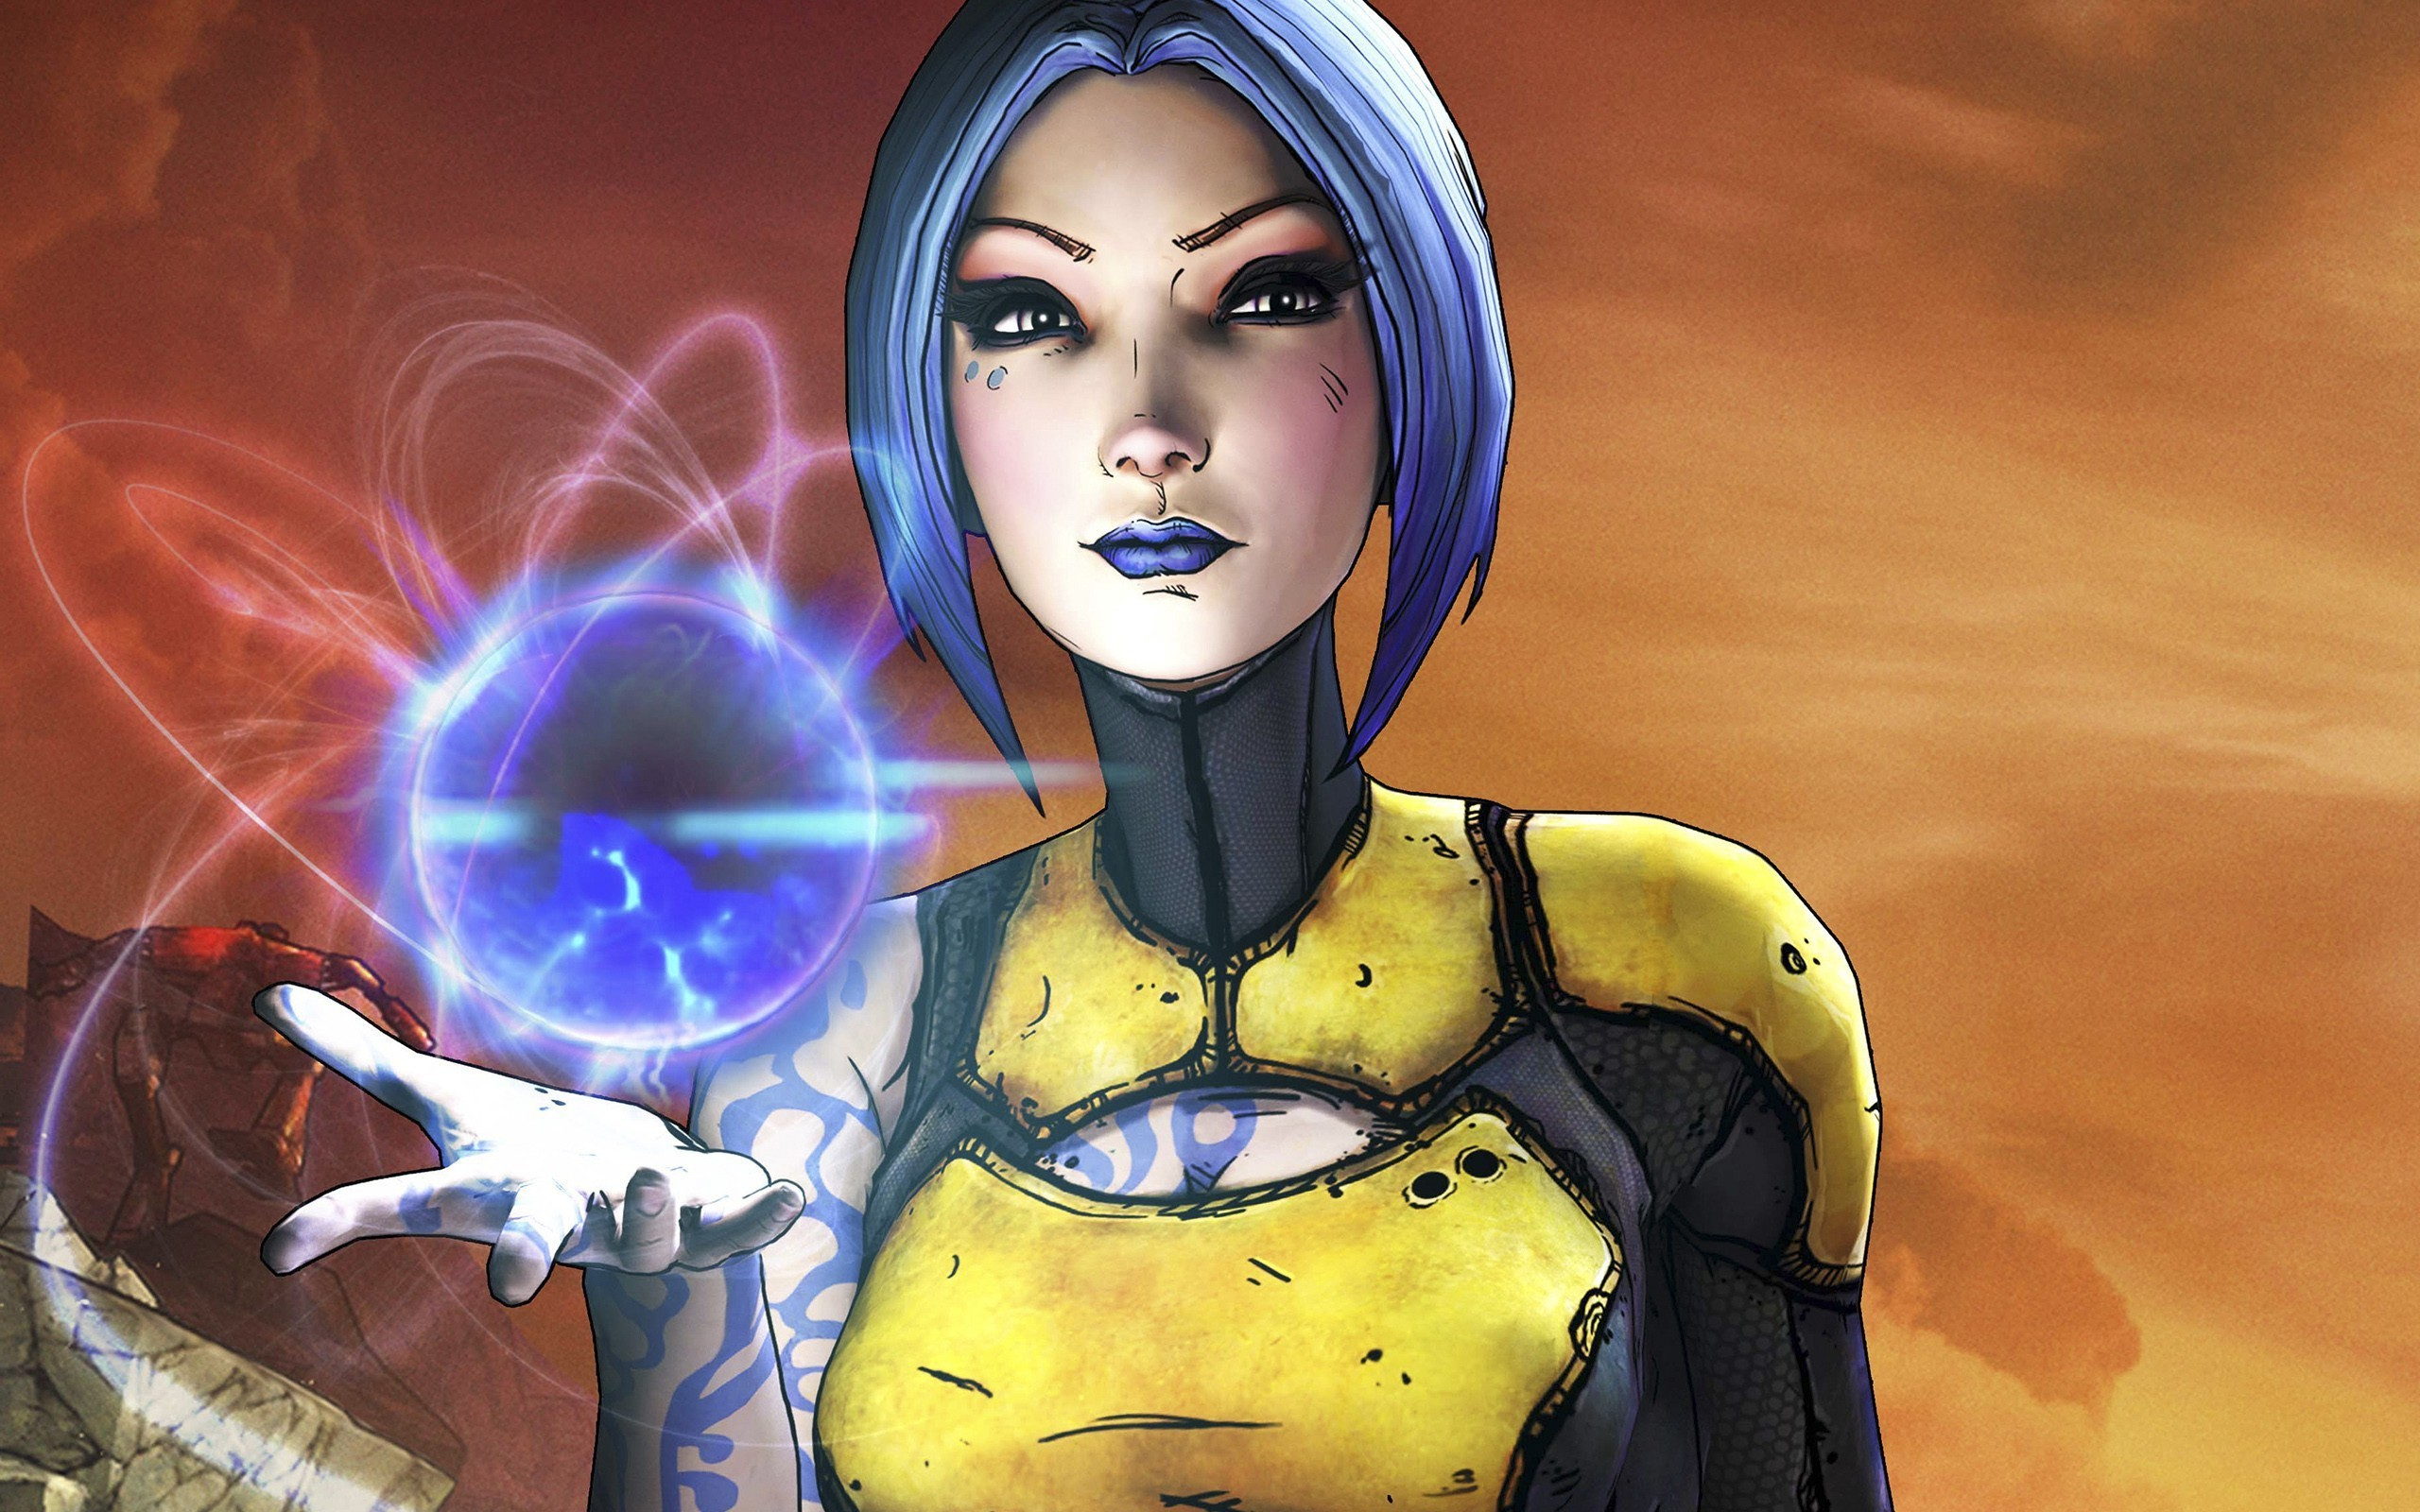 Borderlands 2 Wallpaper HD (73+ images)